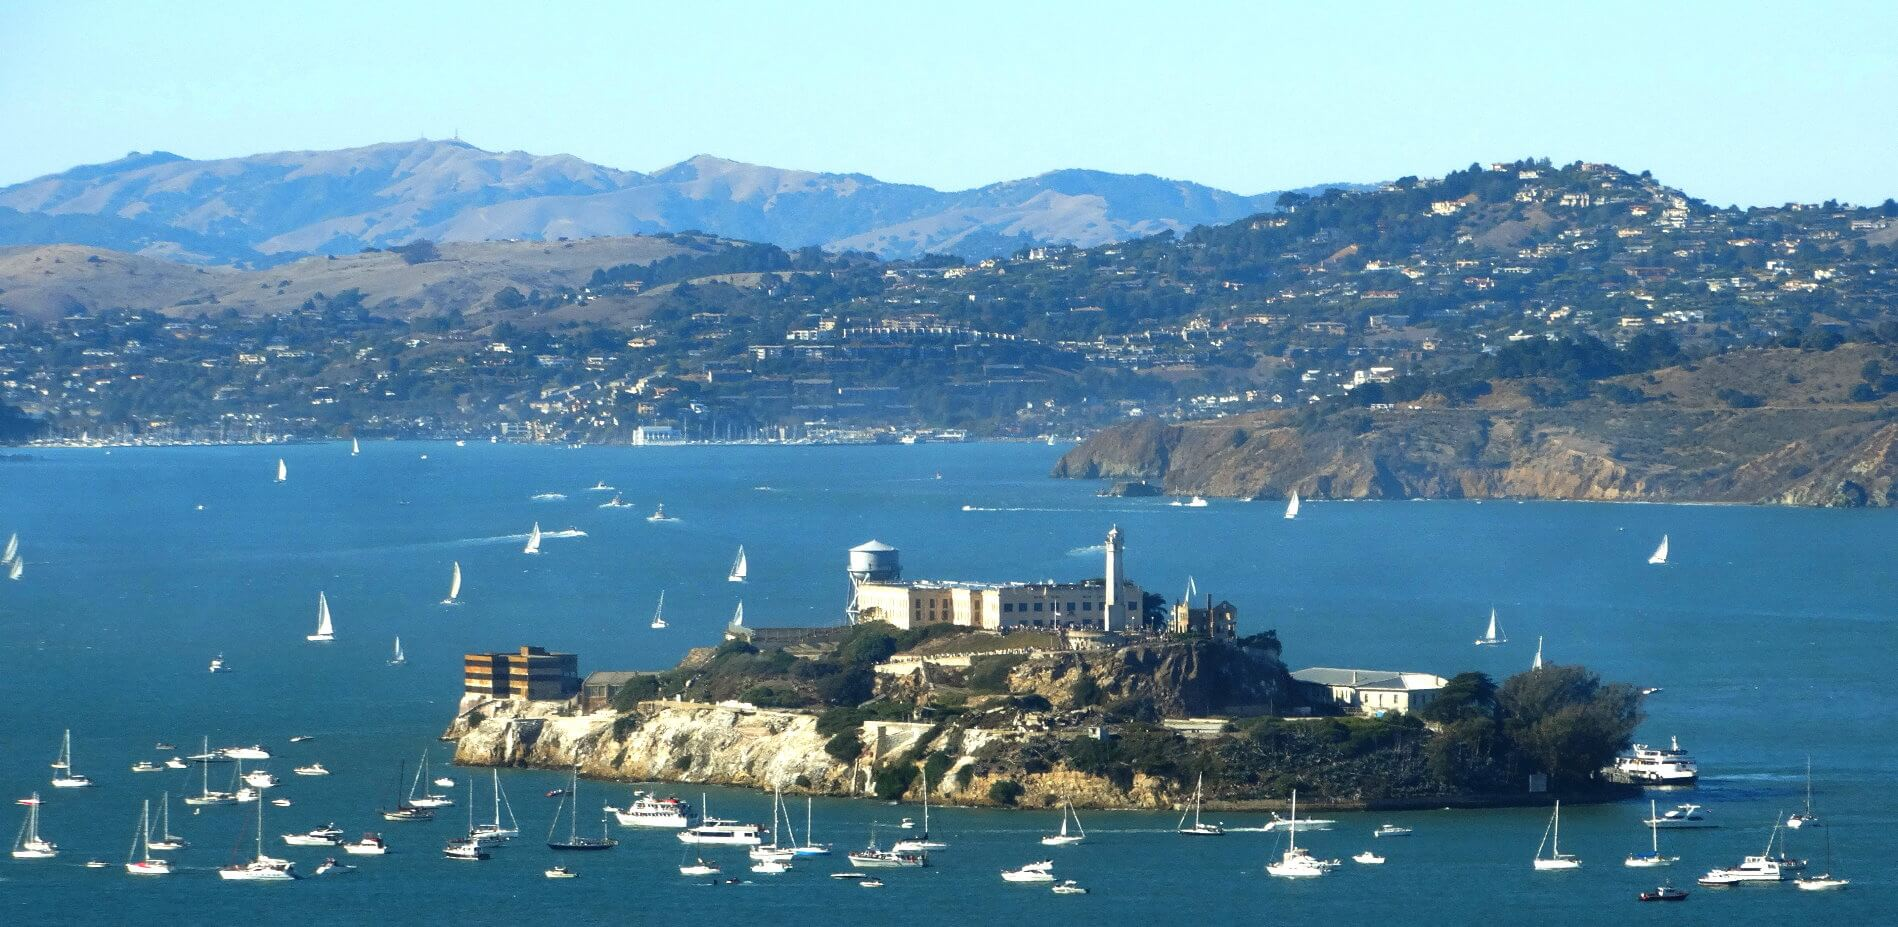 guided-tour-of-SanFrancisco-Bay-and-Alcatraz_-island-prison-tour-with-tickets-incuded